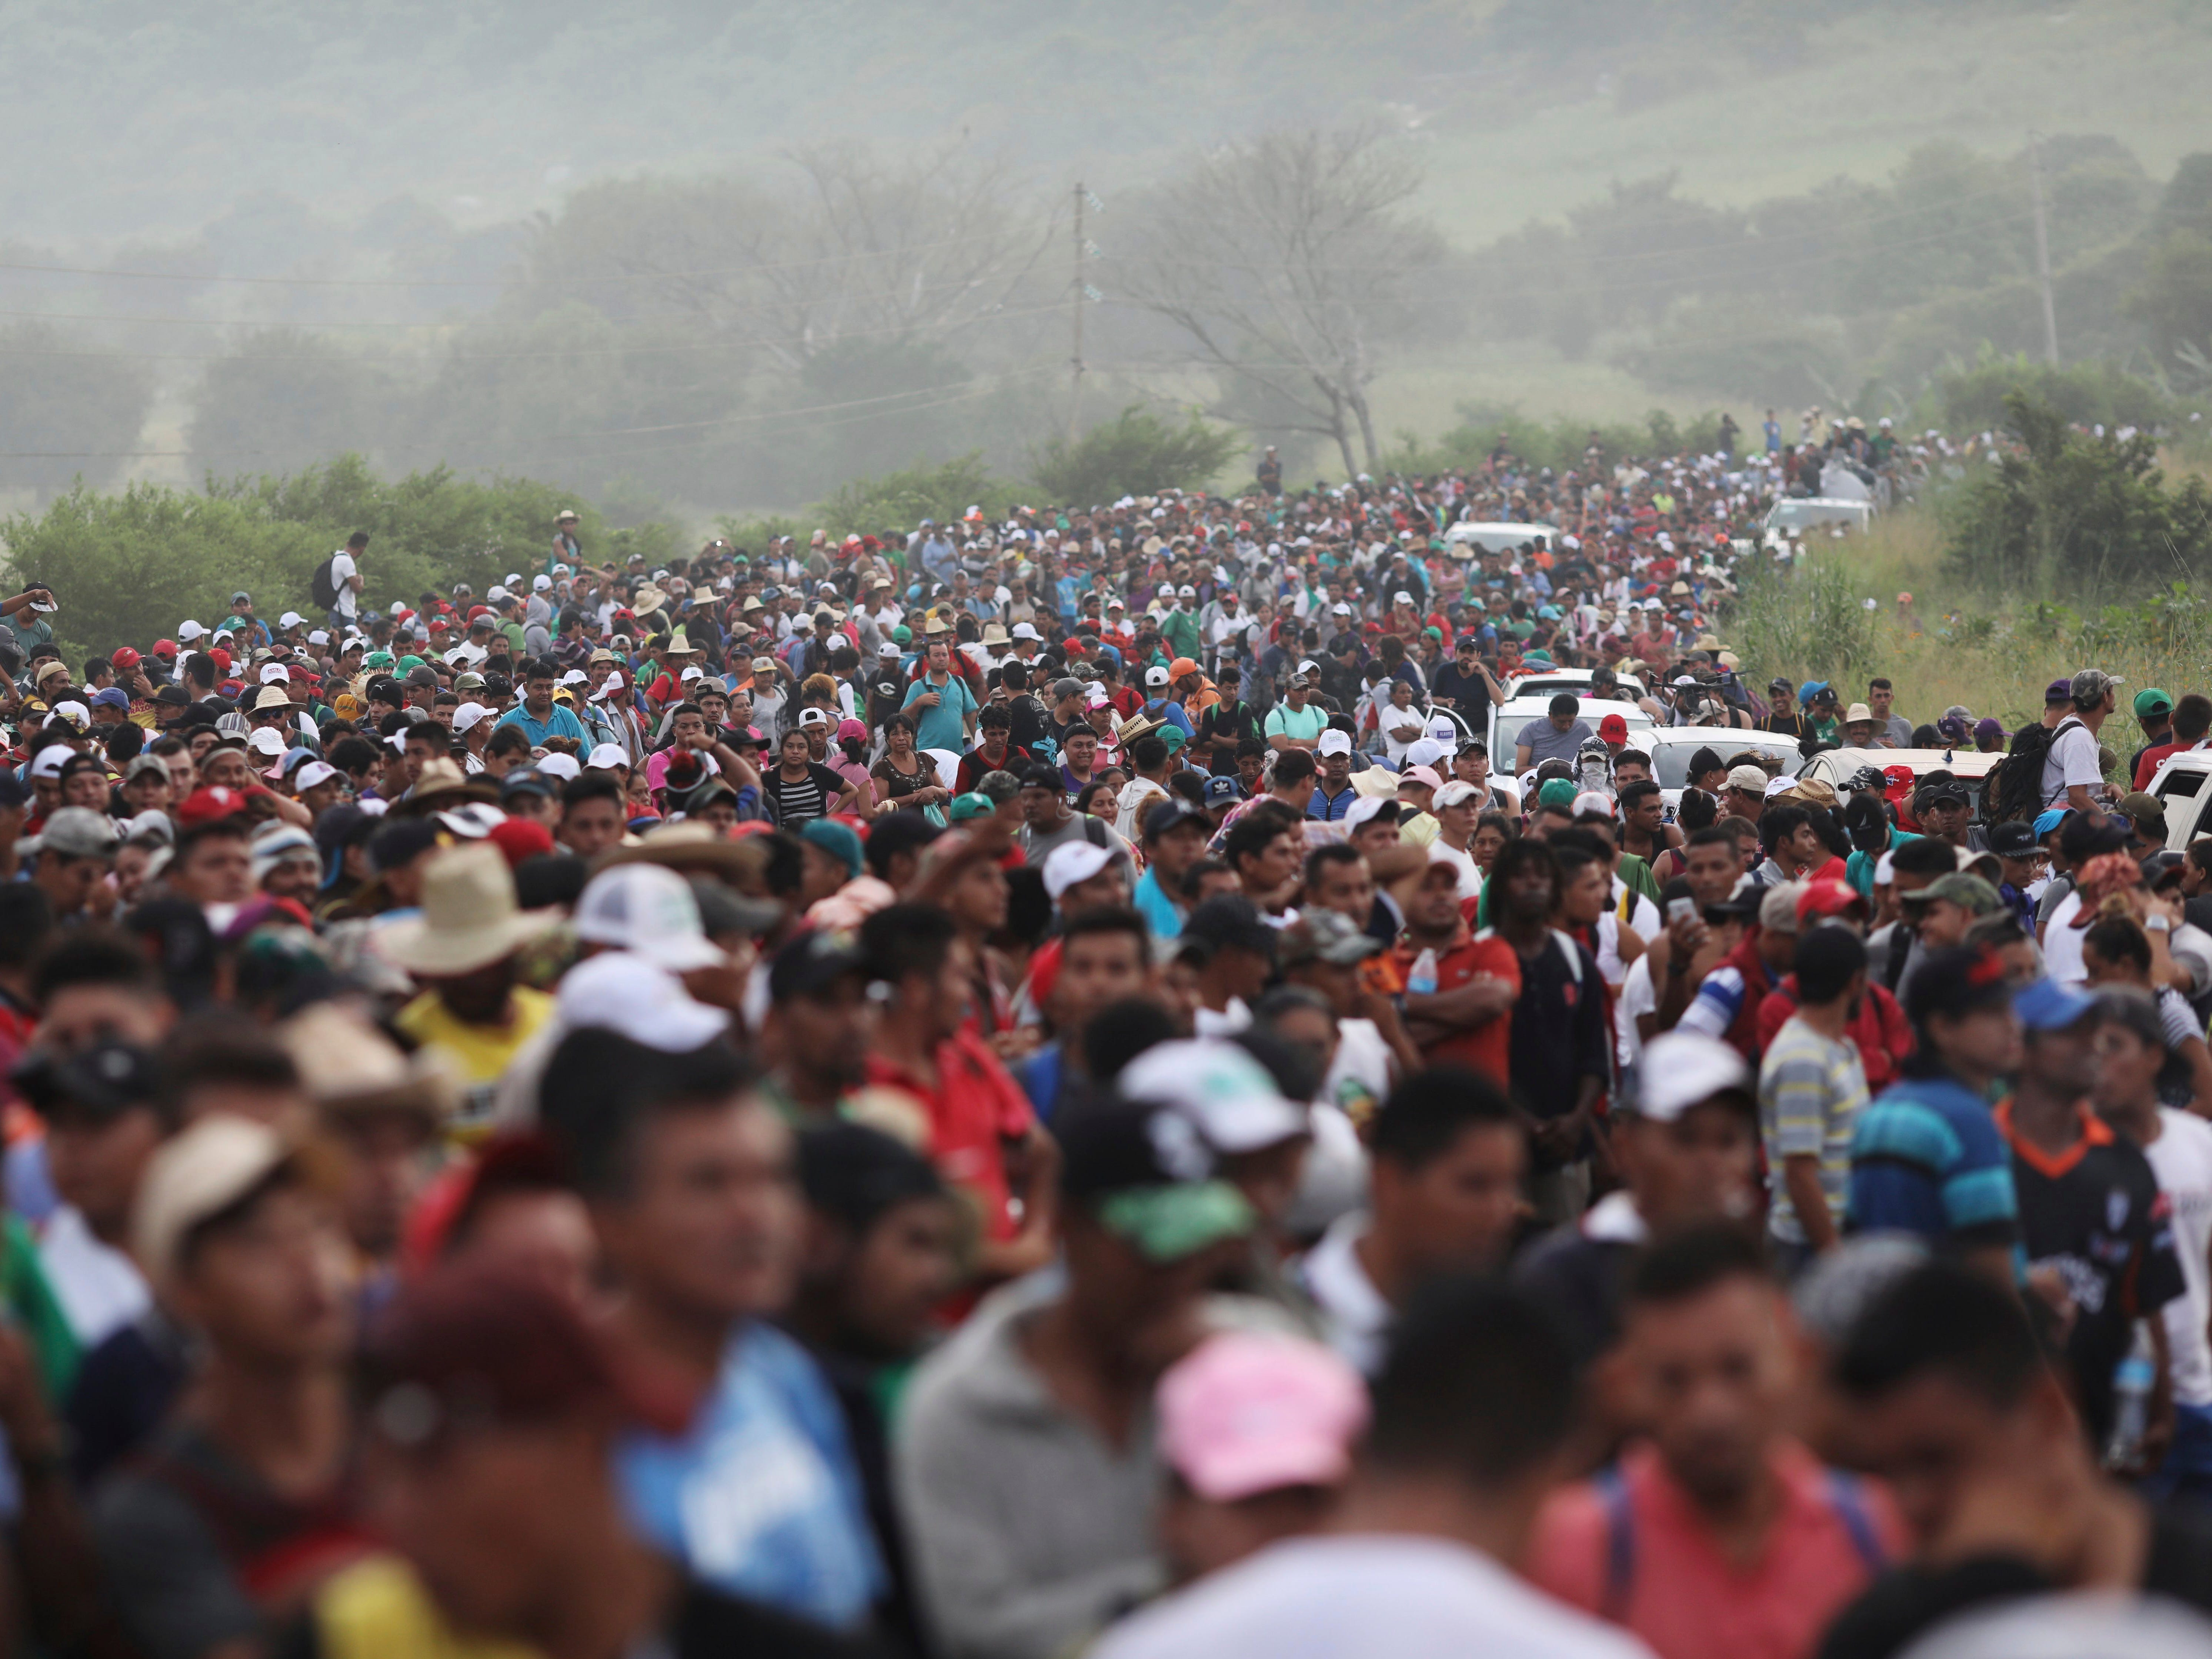 Members of a U.S.-bound migrant caravan stand on a road after federal police briefly blocked their way outside the town of Arriaga on Oct. 27, 2018. Hundreds of Mexican federal officers carrying plastic shields blocked the caravan from advancing toward the U.S. after several thousand of the migrants turned down the chance to apply for refugee status and obtain a Mexican offer of benefits.